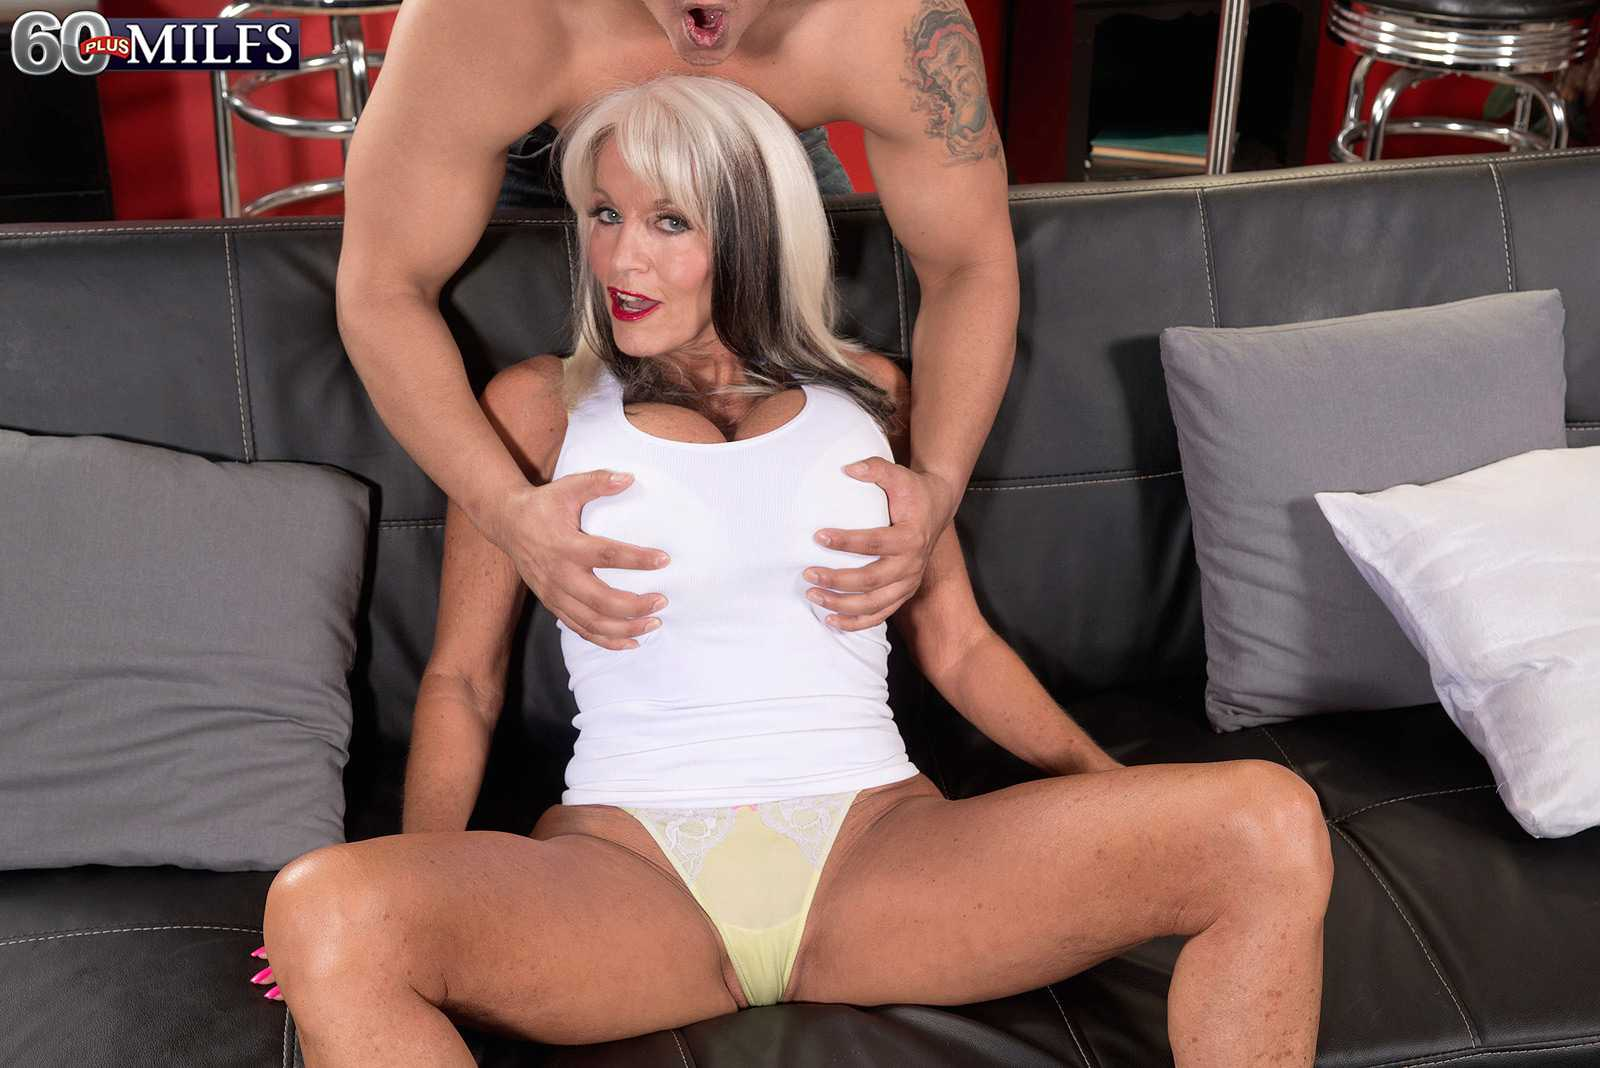 60 + MILF Sally D'Angelo Gets Her Backside Fucked